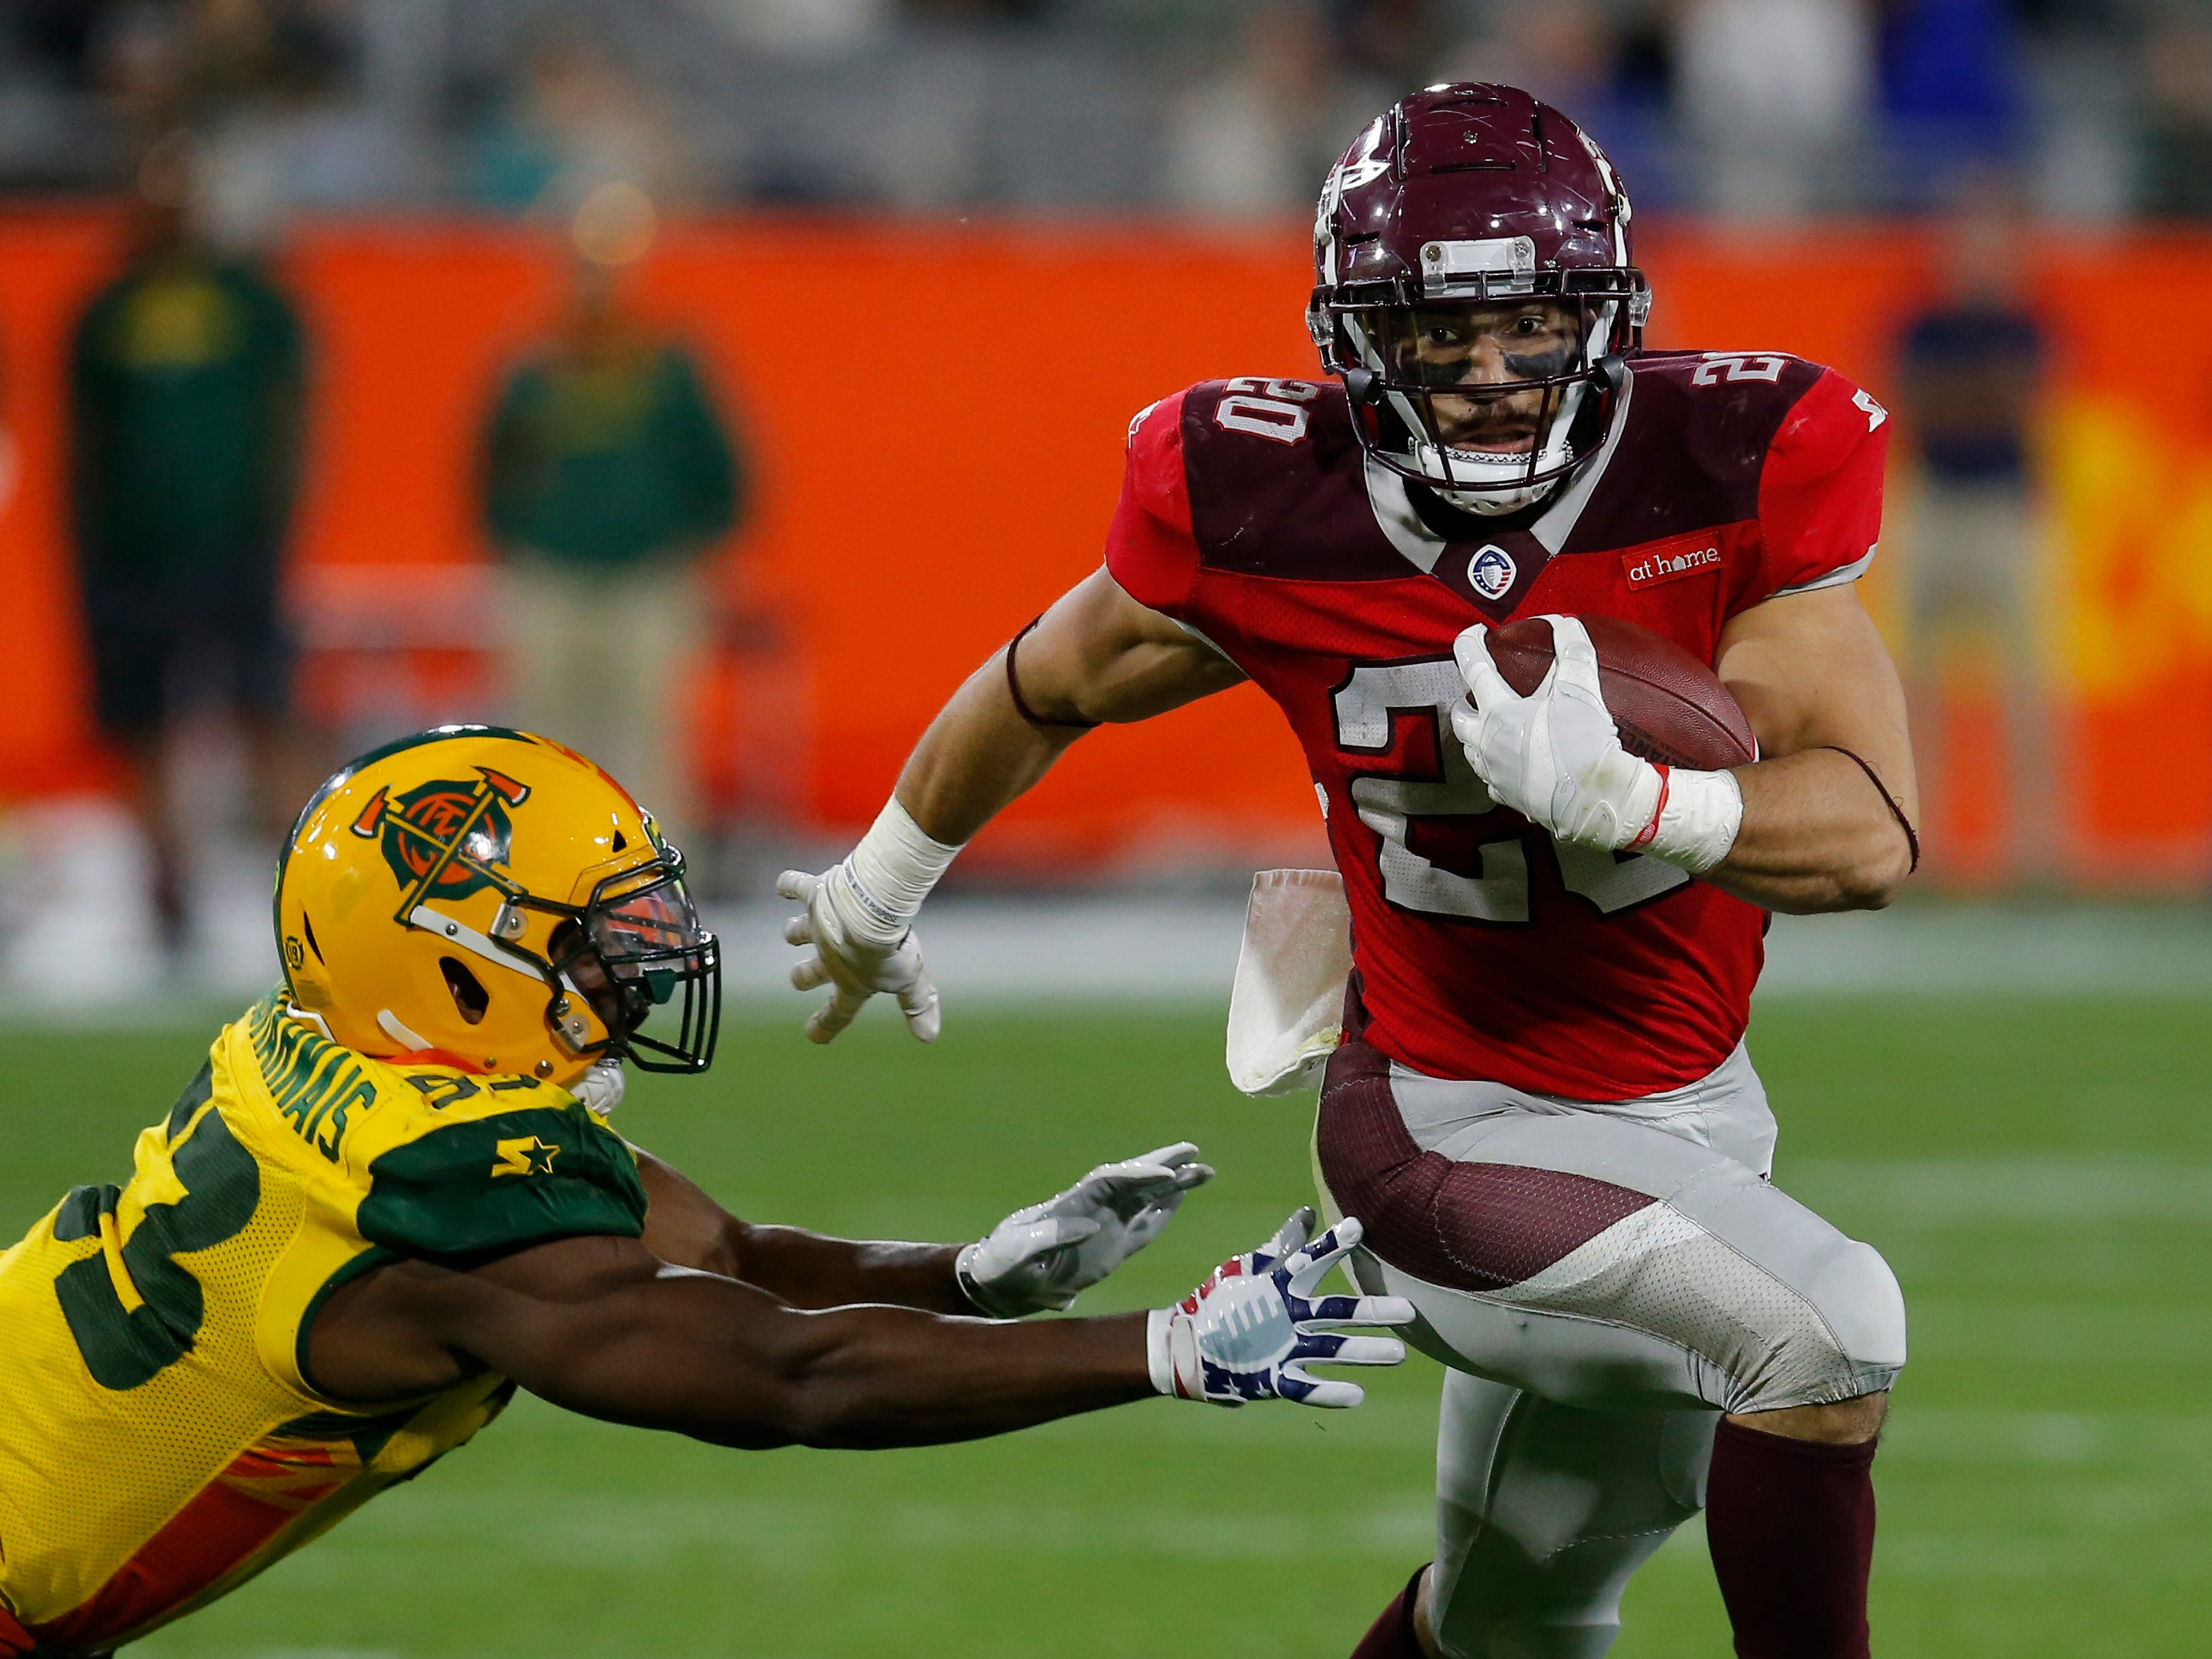 San Antonio Commanders running back Kenneth Farrow, II (20) breaks a tackle by Arizona Hotshots defensive tackle Siupeli Anau (93) in the second half during an AAF football game, Sunday, March 10, 2019, at Sun Devil Stadium in Phoenix. San Antonio defeated Arizona 29-25. (AP Photo/Rick Scuteri)